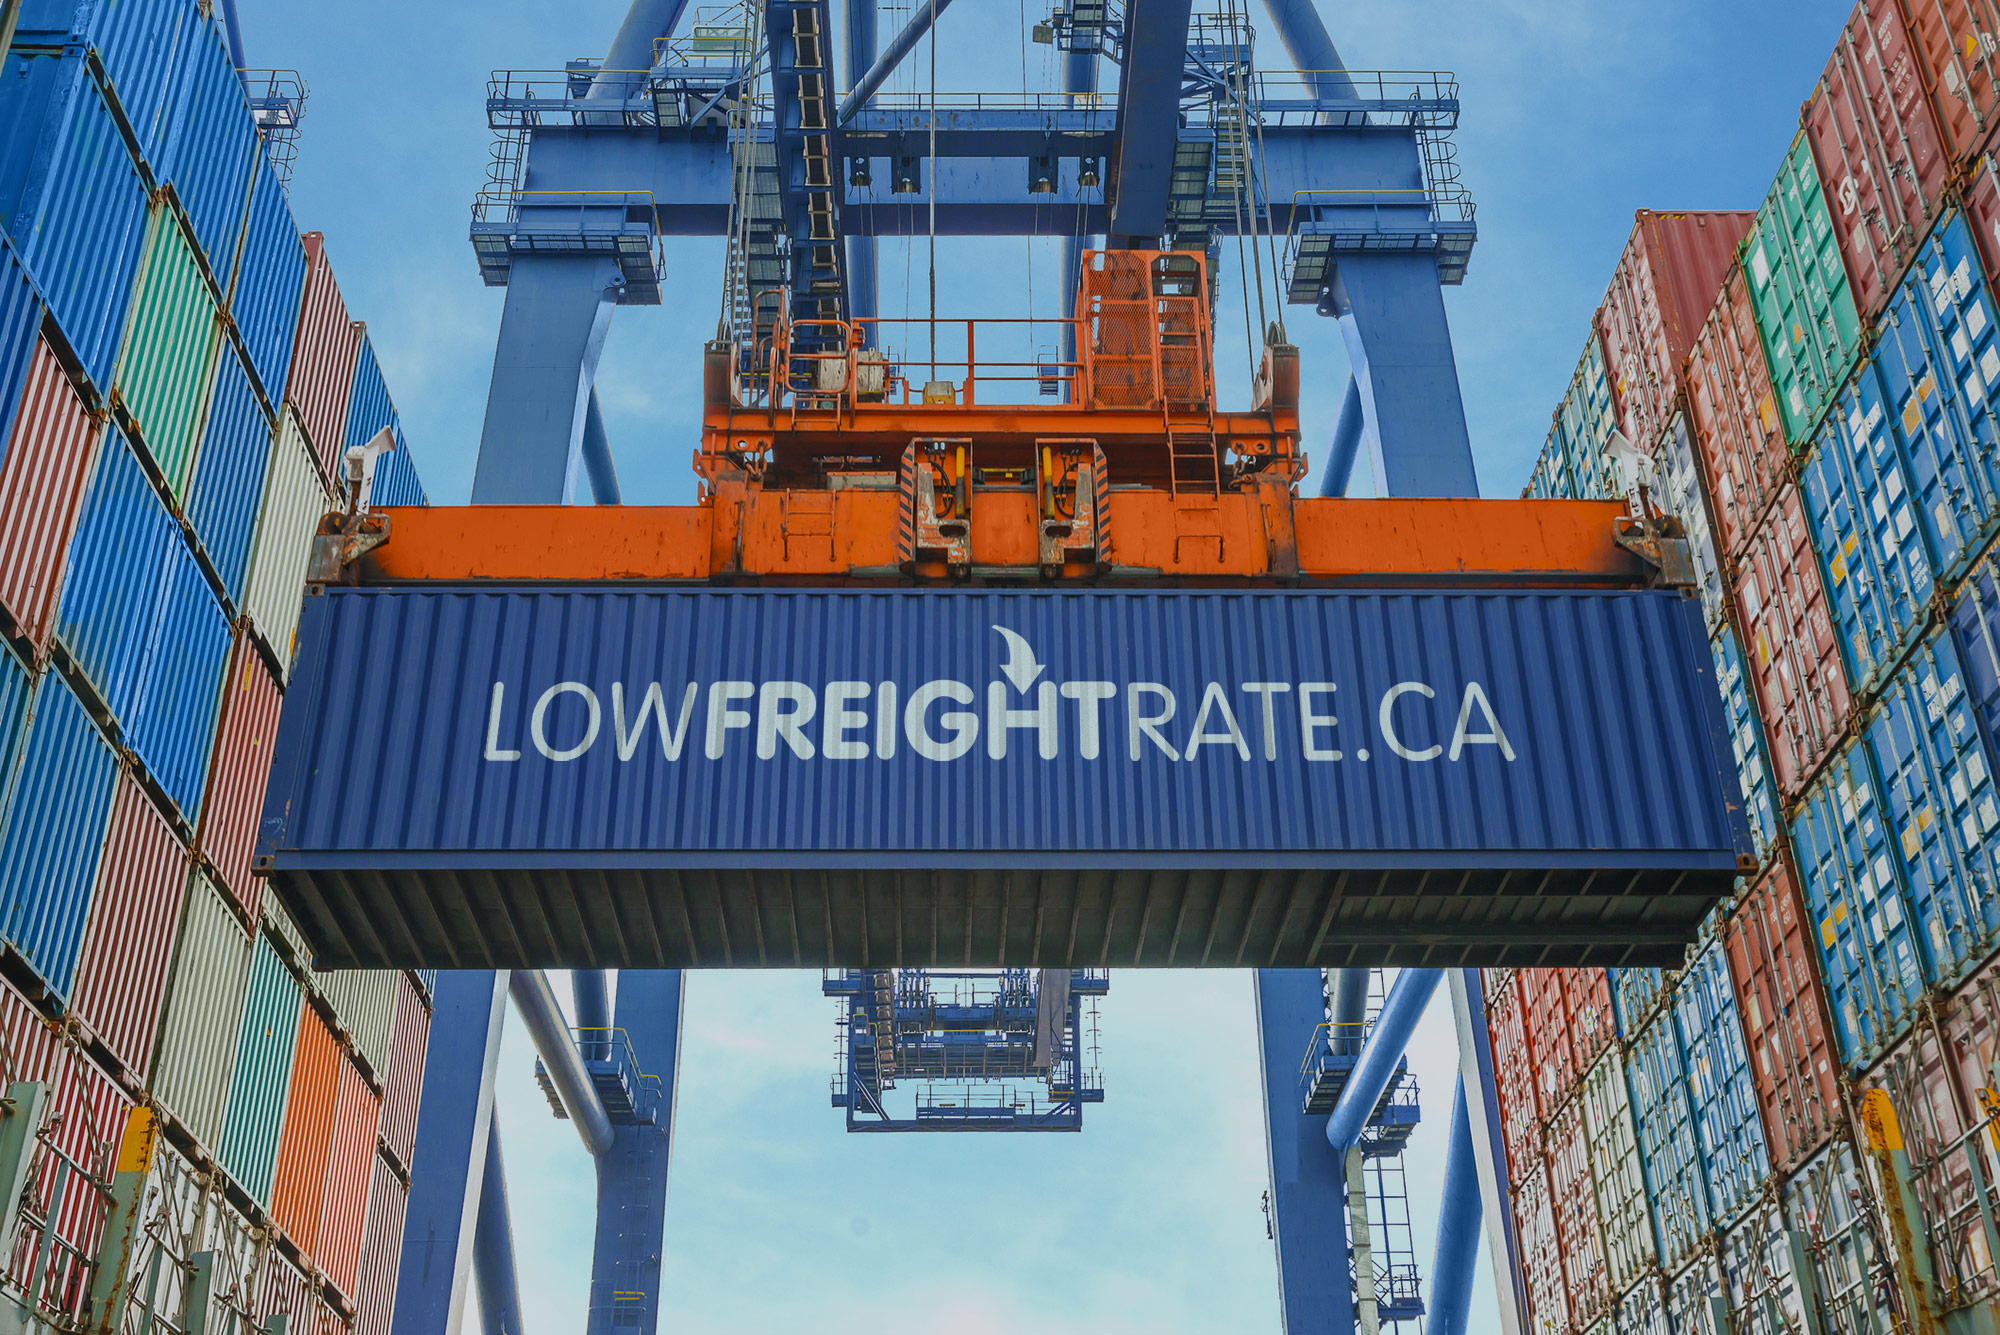 https://lowfreightrate.ca/wp-content/uploads/2015/10/lowfreightrate-crane-container.jpg